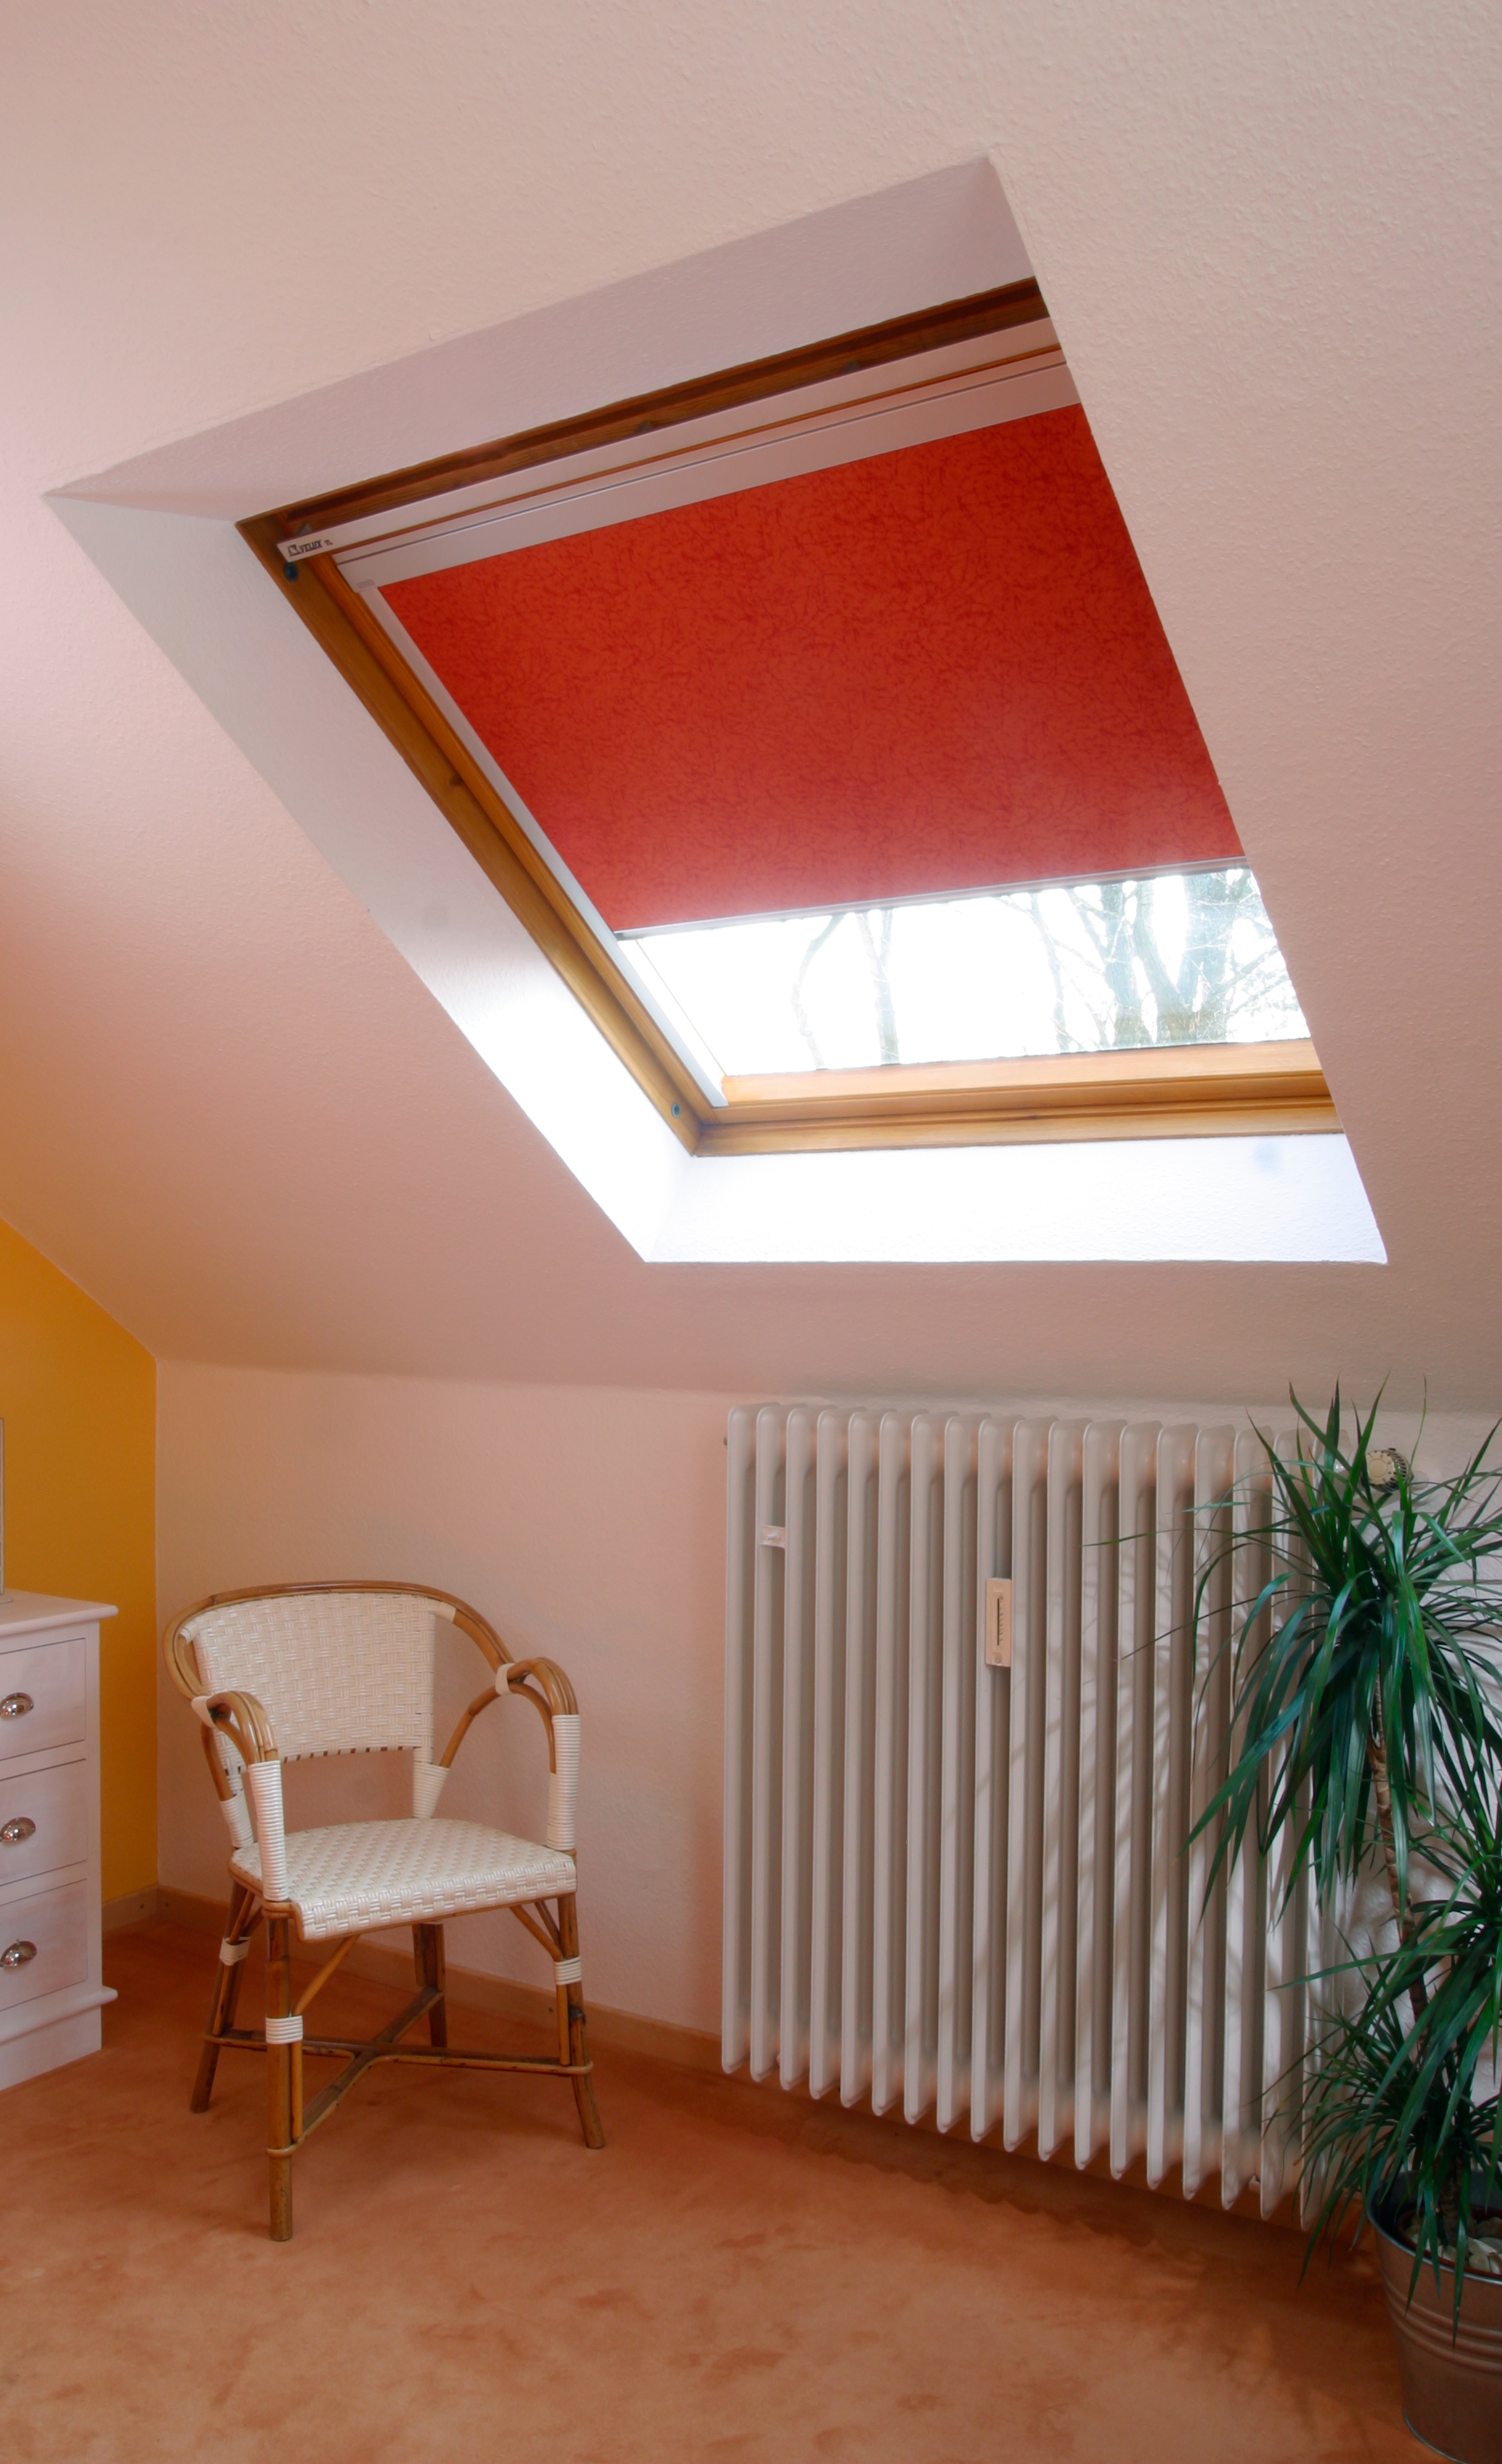 Velux dachfenster rollo reparieren velux integra fr with for Fenster reparieren